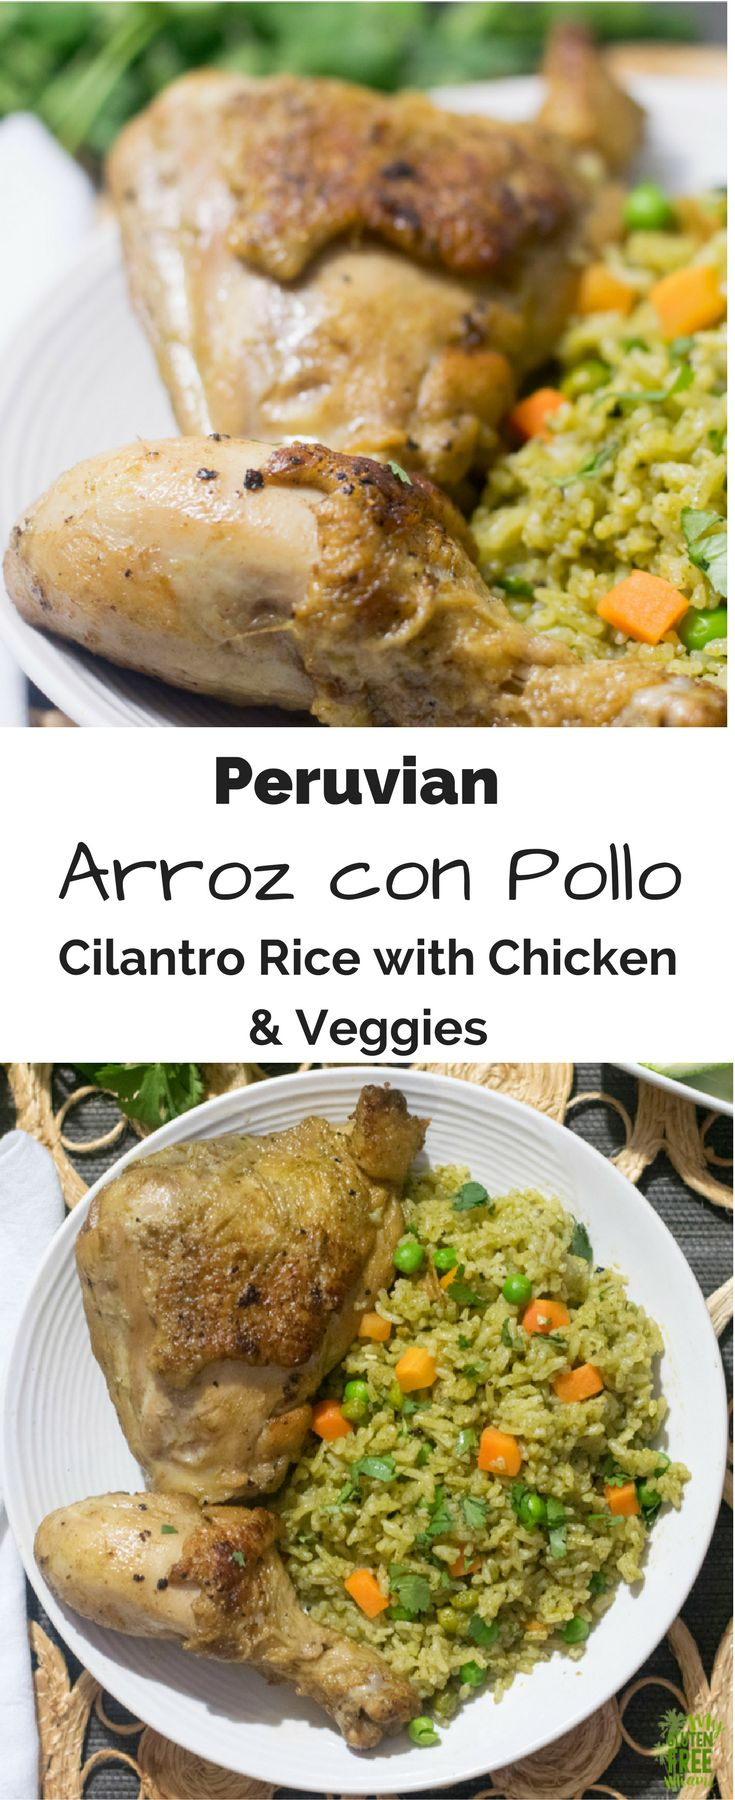 Peruvian Arroz con Pollo- Chicken, cooked with rice, mixed vegetables & cilantro. Savory and full of flavor, the perfect weeknight dish. via @GLUTENFREEMIAMI